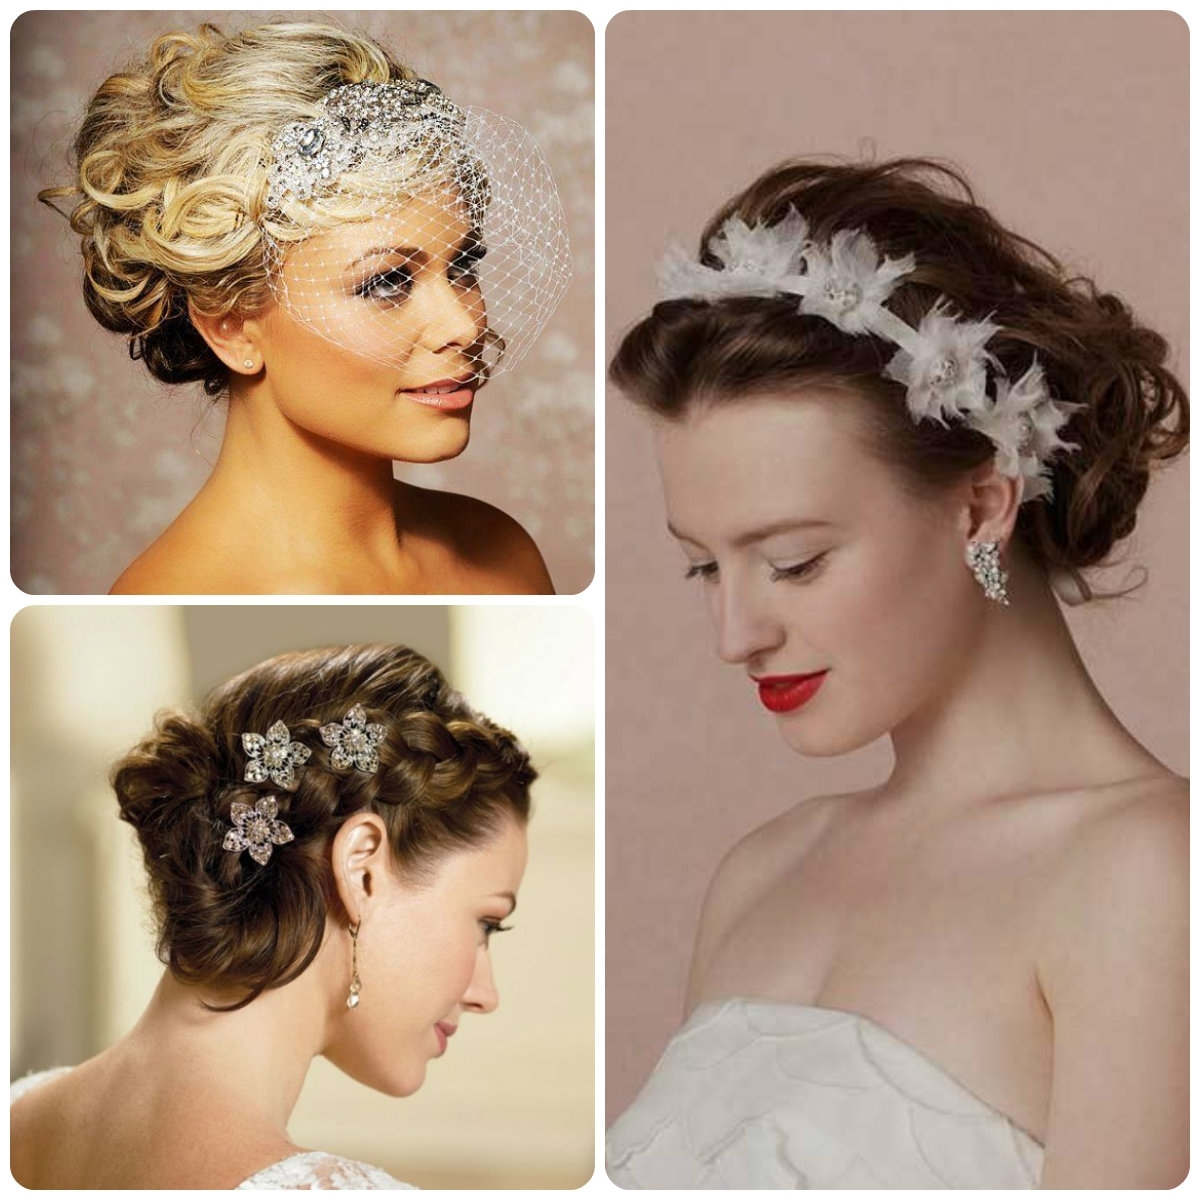 2017 Elegant Wedding Hairstyles For Bridesmaids Intended For Wedding Hairstyles Bridal Hairstyles (View 1 of 15)